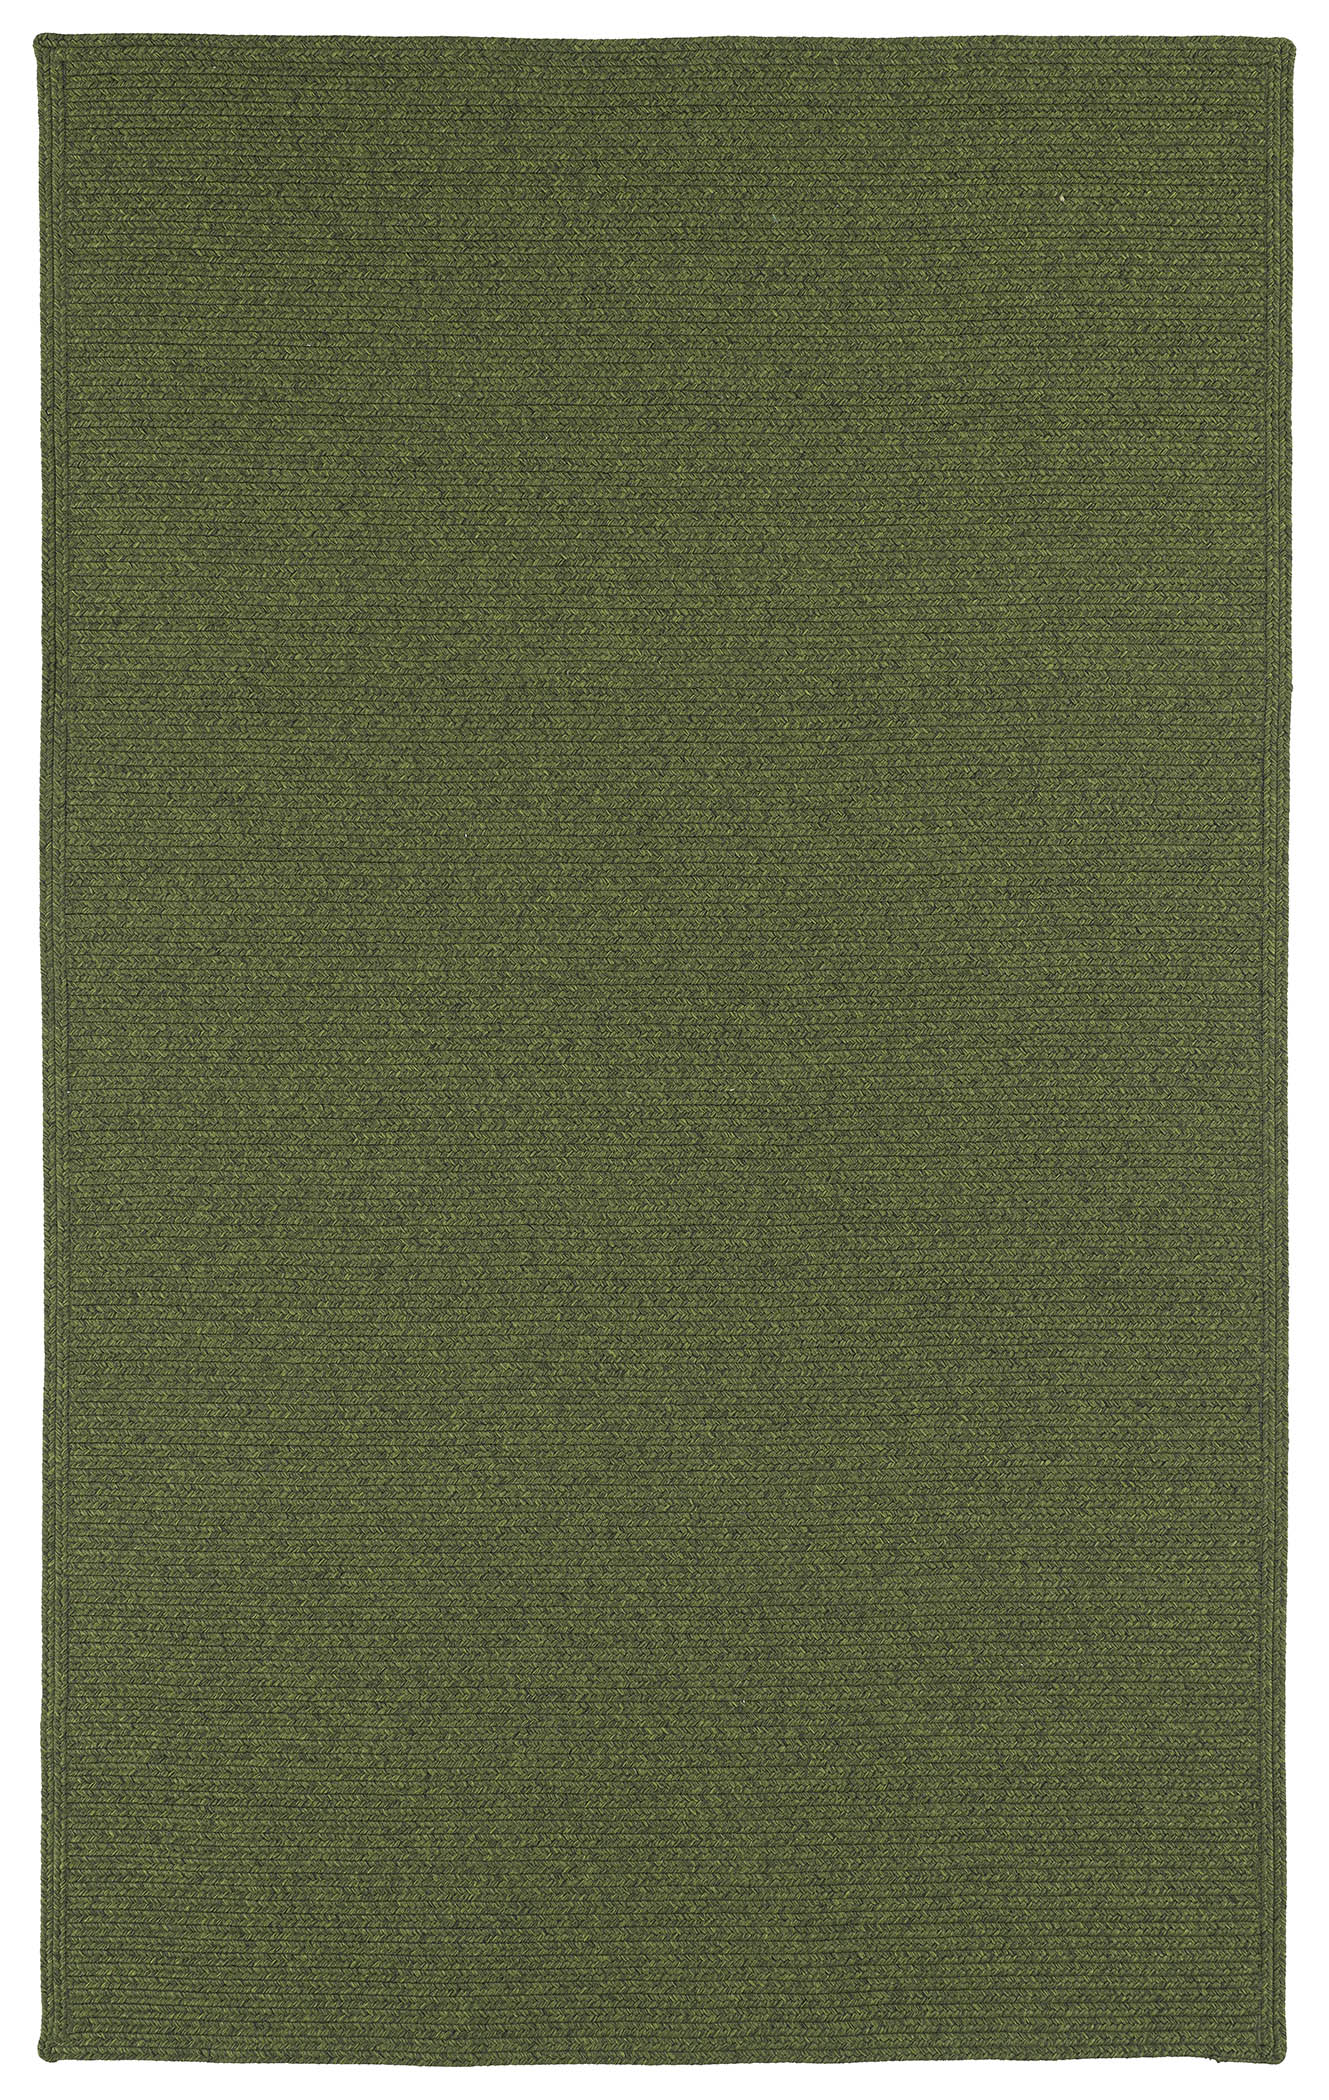 Bikini 3020 Aspen 35 Outdoor Rug by Kaleen